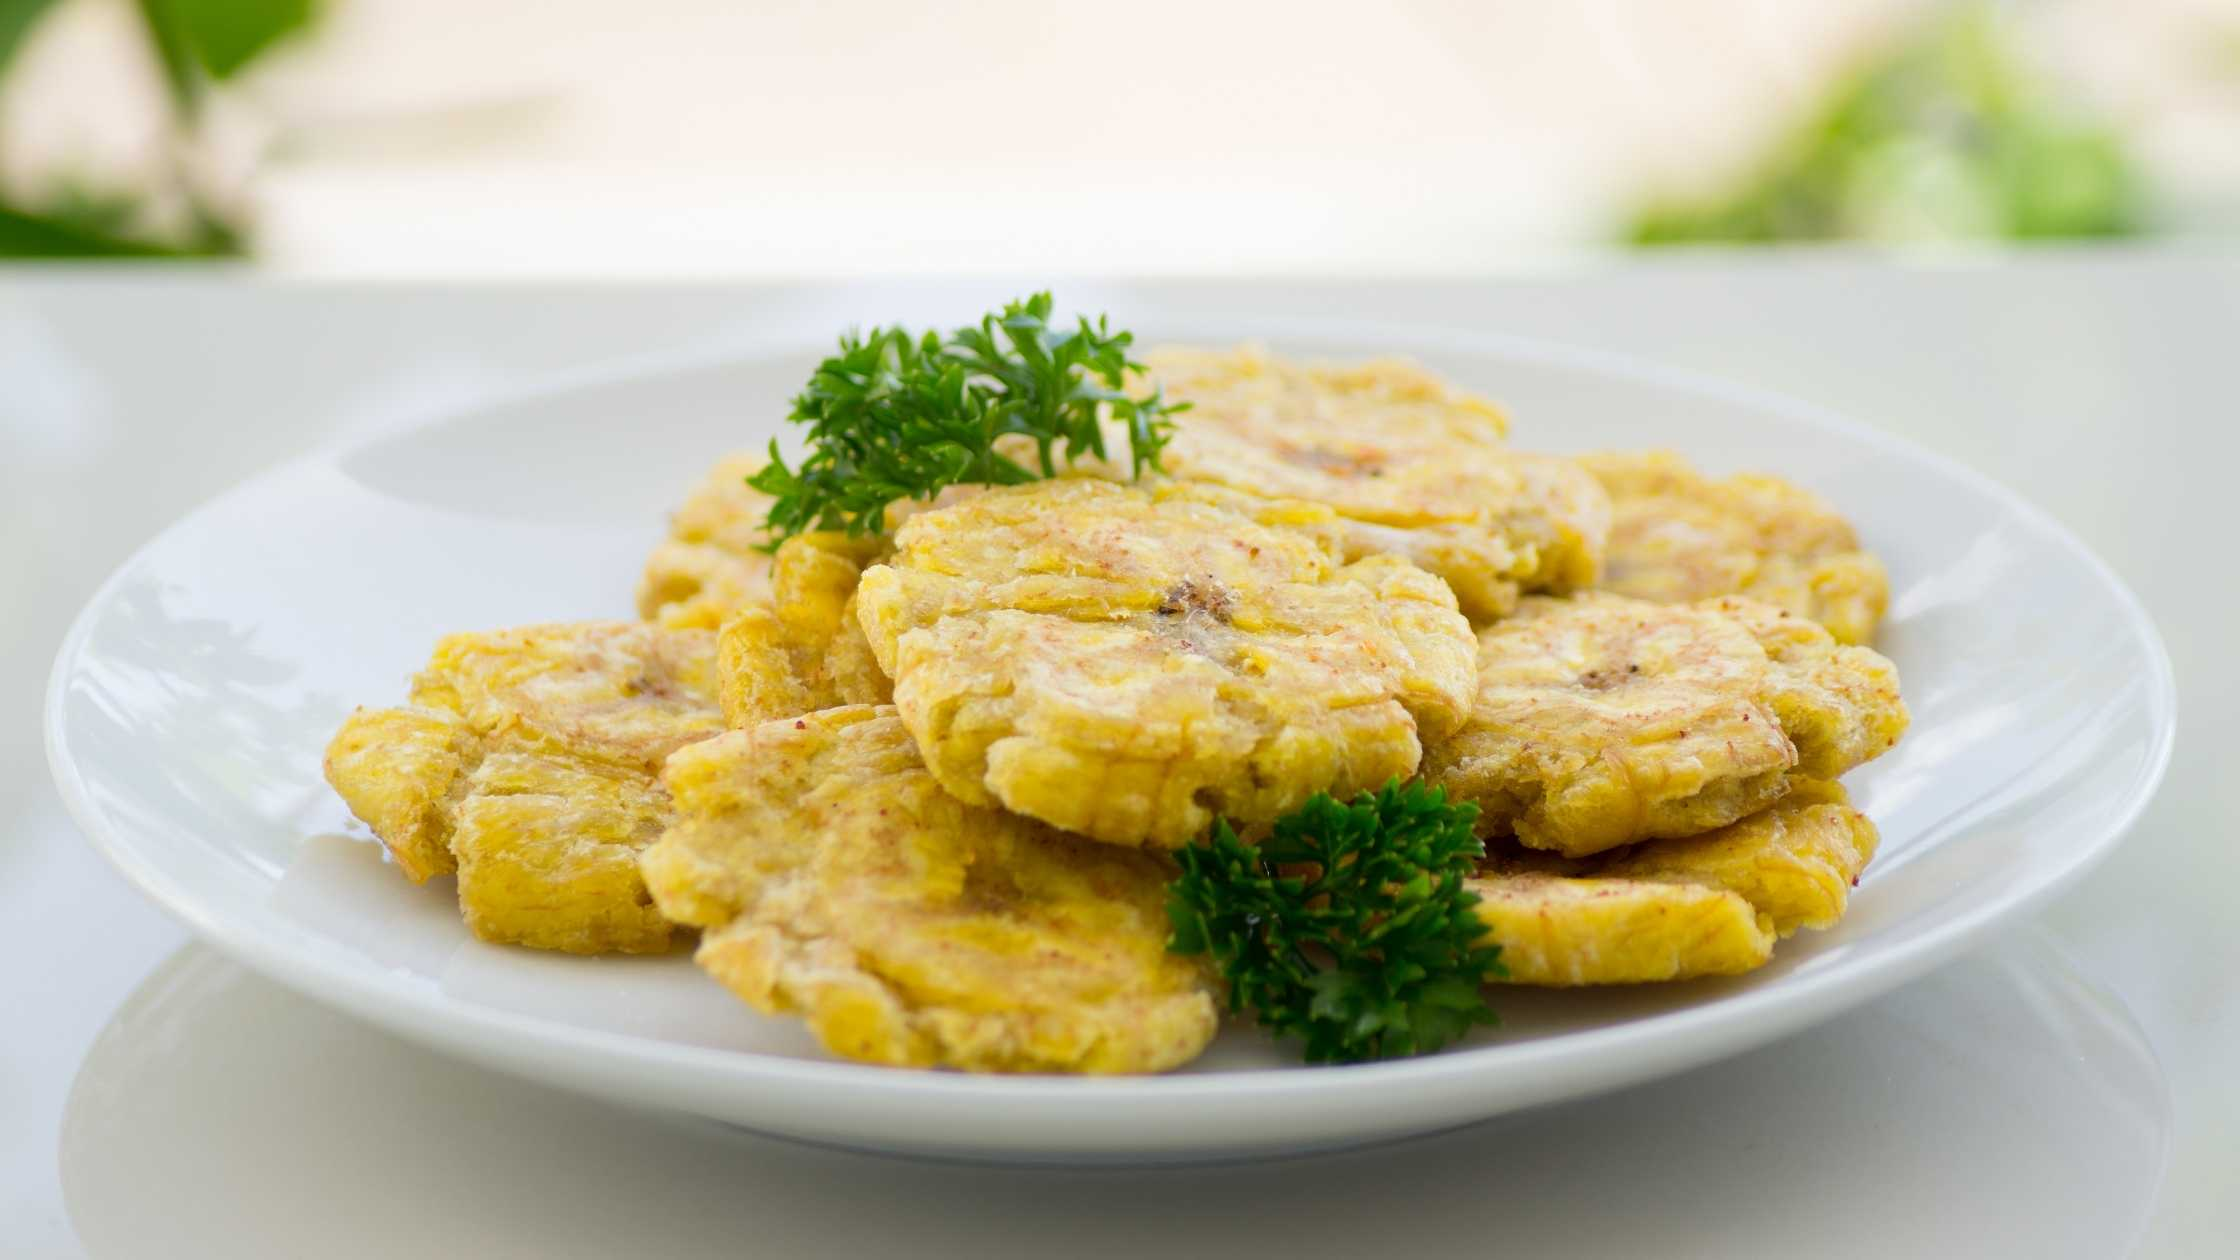 tostones fritos on a white plate